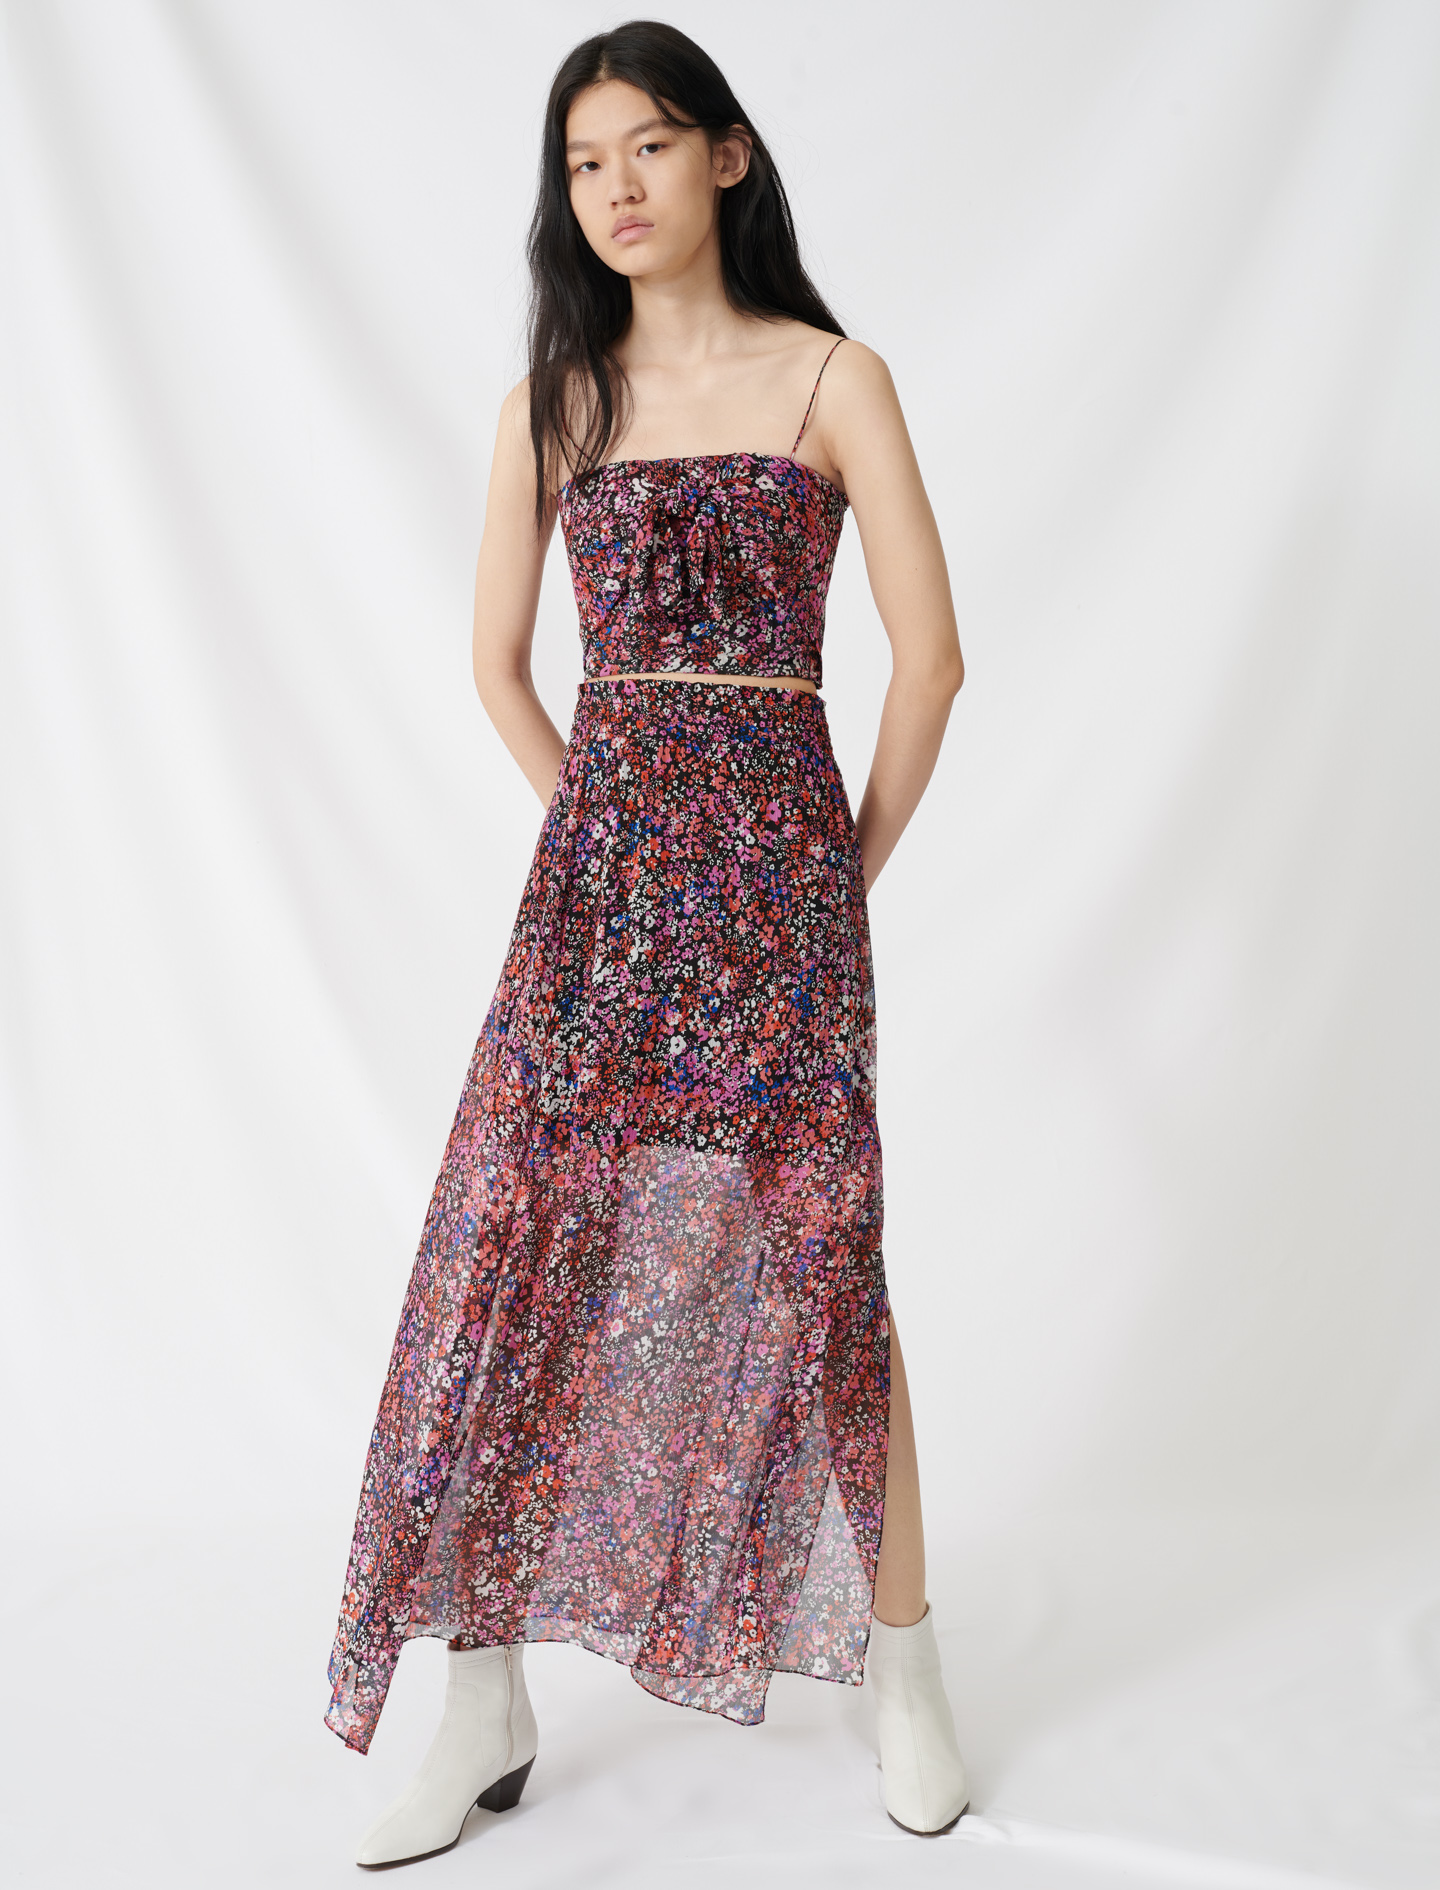 Silk skirt with floral motif - Multi-colour